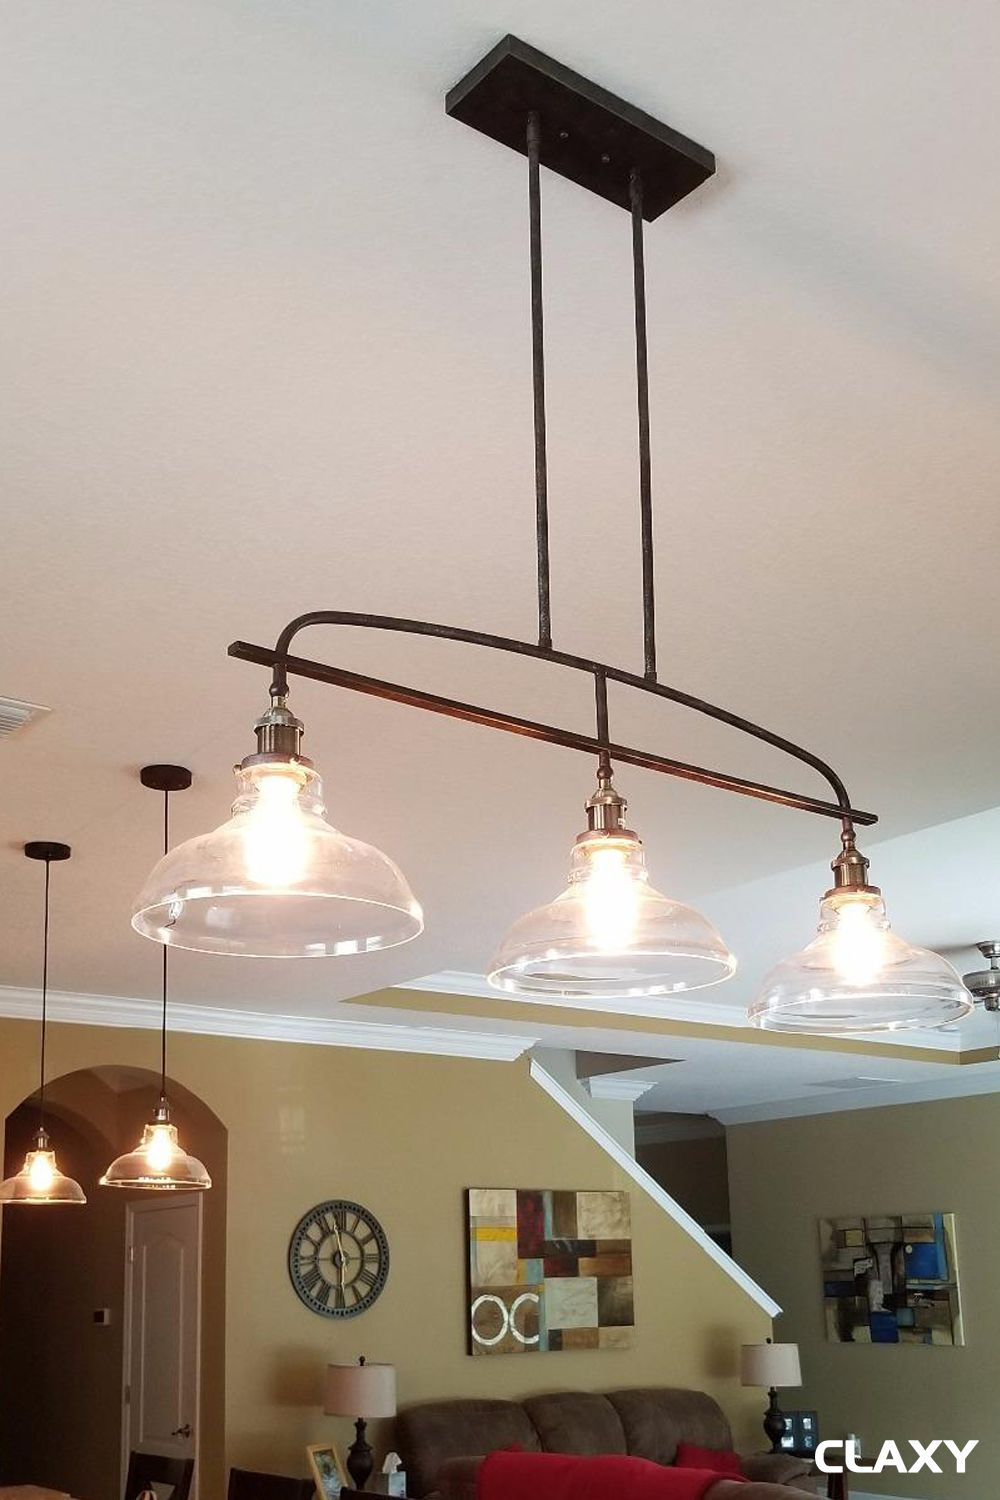 Kitchen Island Light In 2019 | Kitchen Island Lighting Ideas In Bautista 6 Light Kitchen Island Bulb Pendants (View 22 of 30)